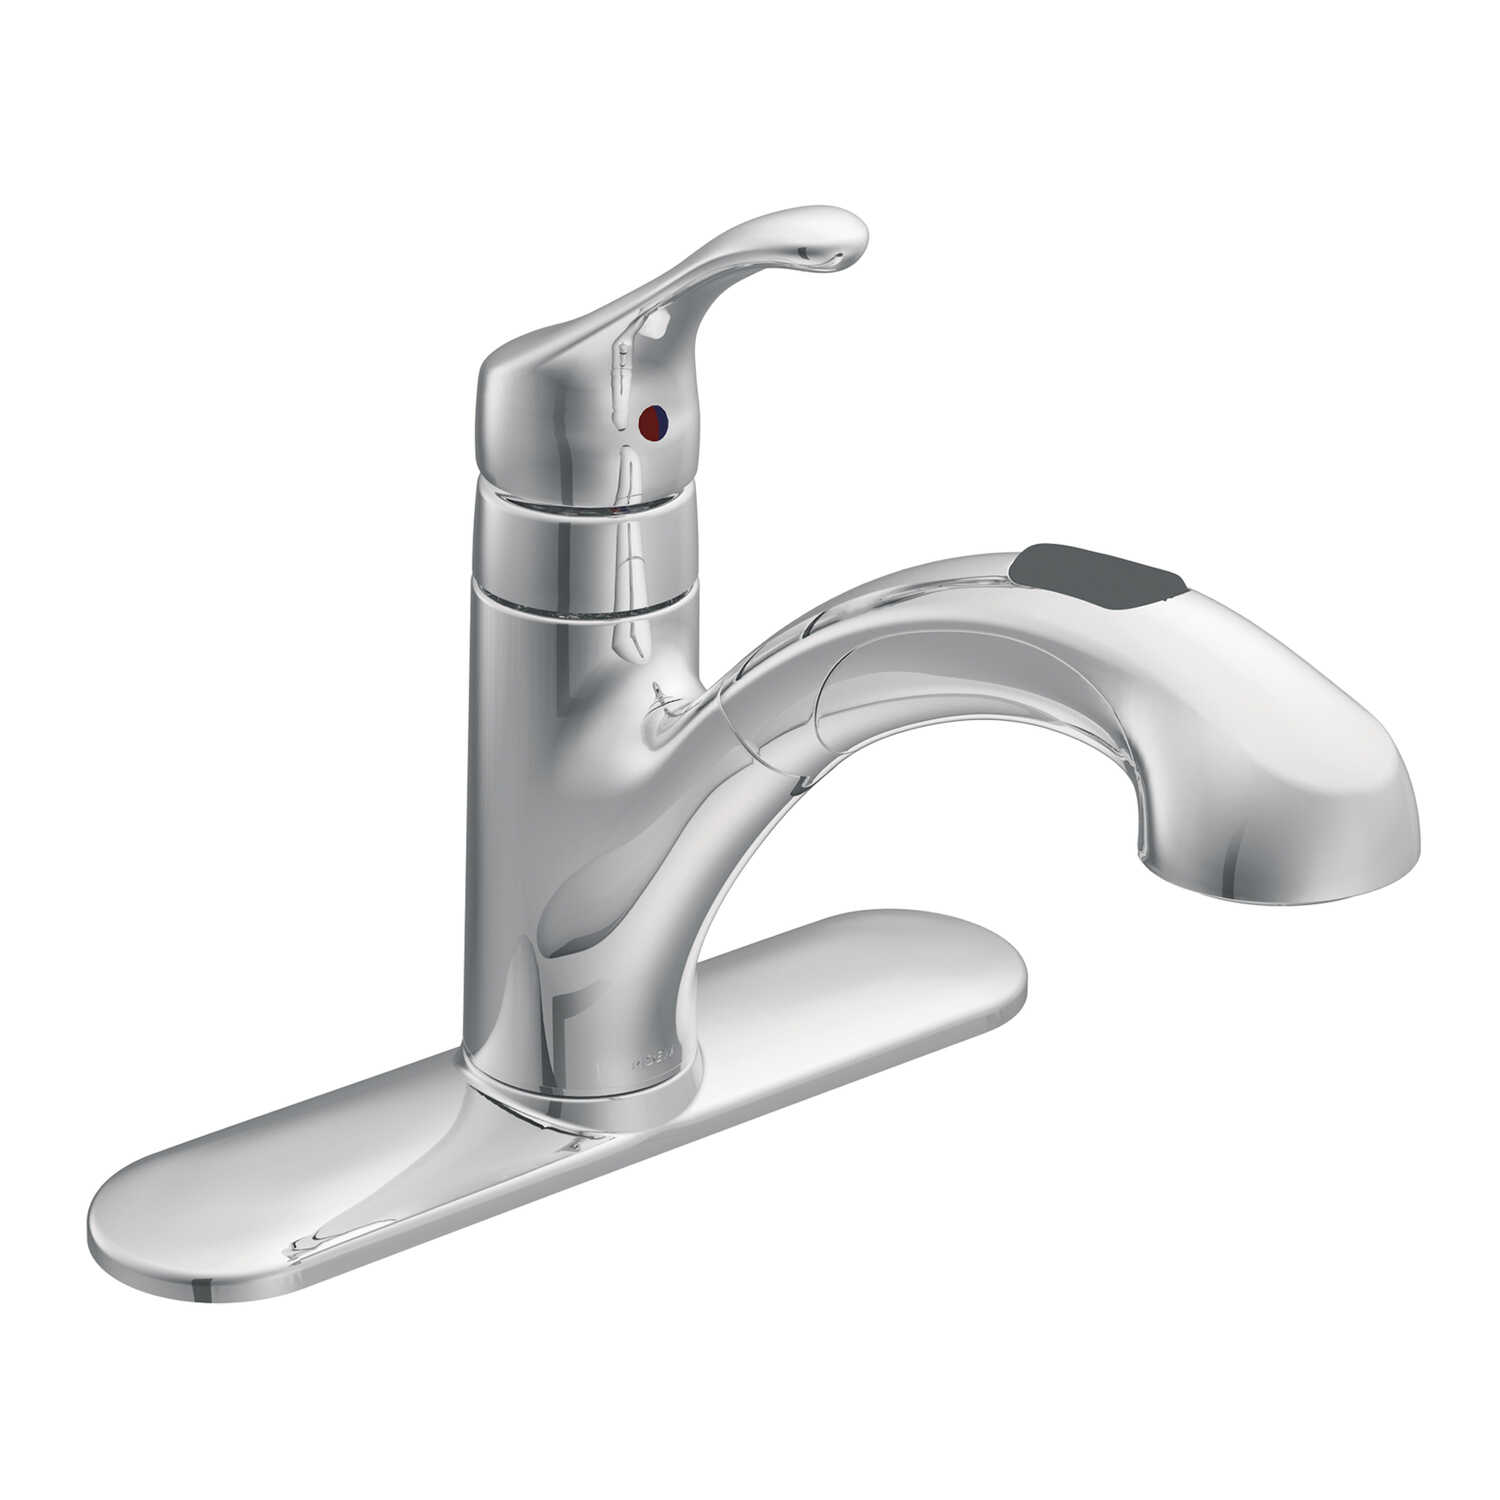 Moen Renzo One Handle Chrome Pull Out Kitchen Faucet - Ace ...